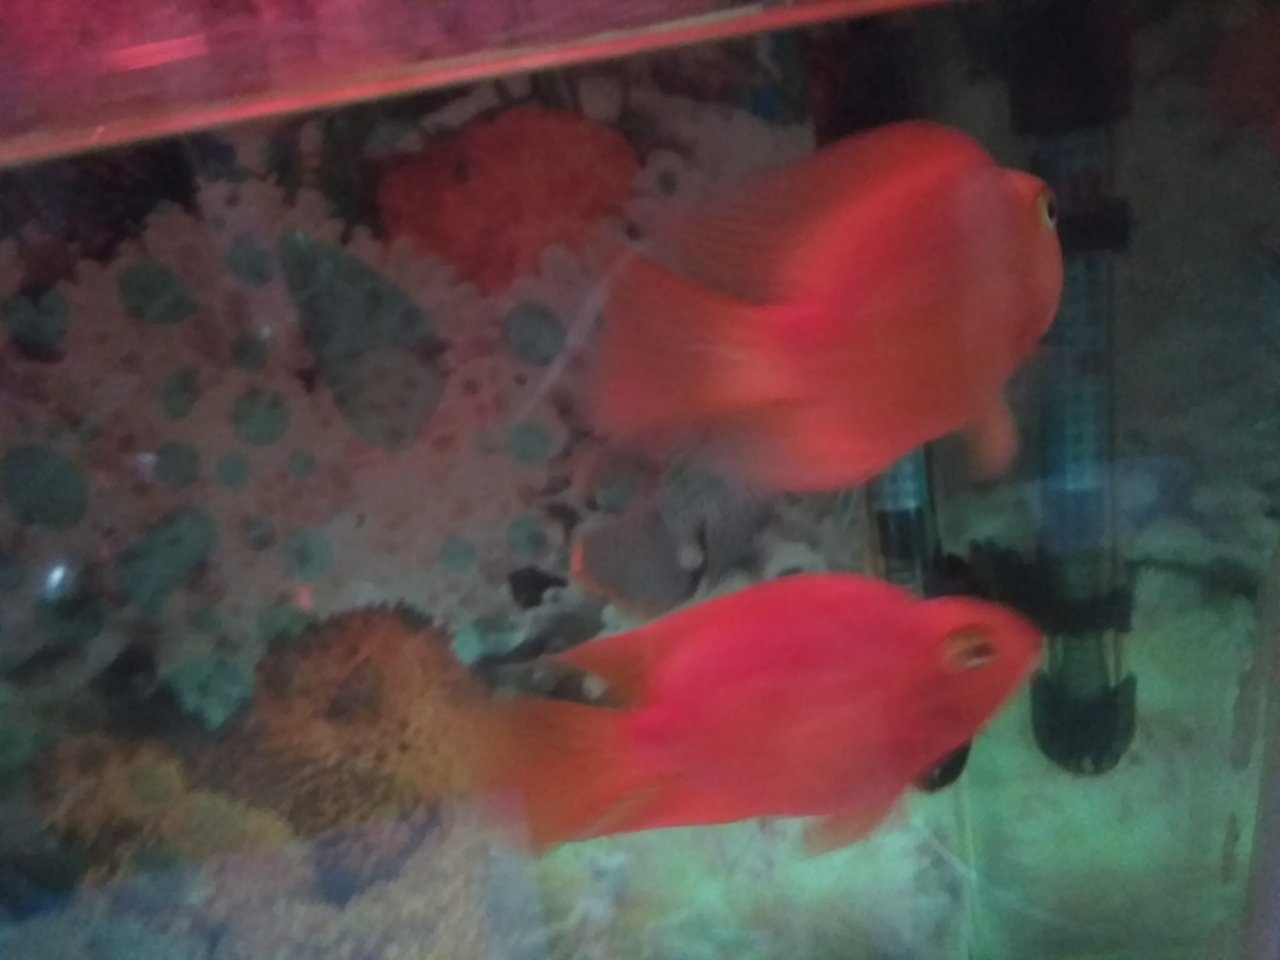 Hiw To Find Male N Female Parrot Fish I Am Not Able To Recognize Can ...